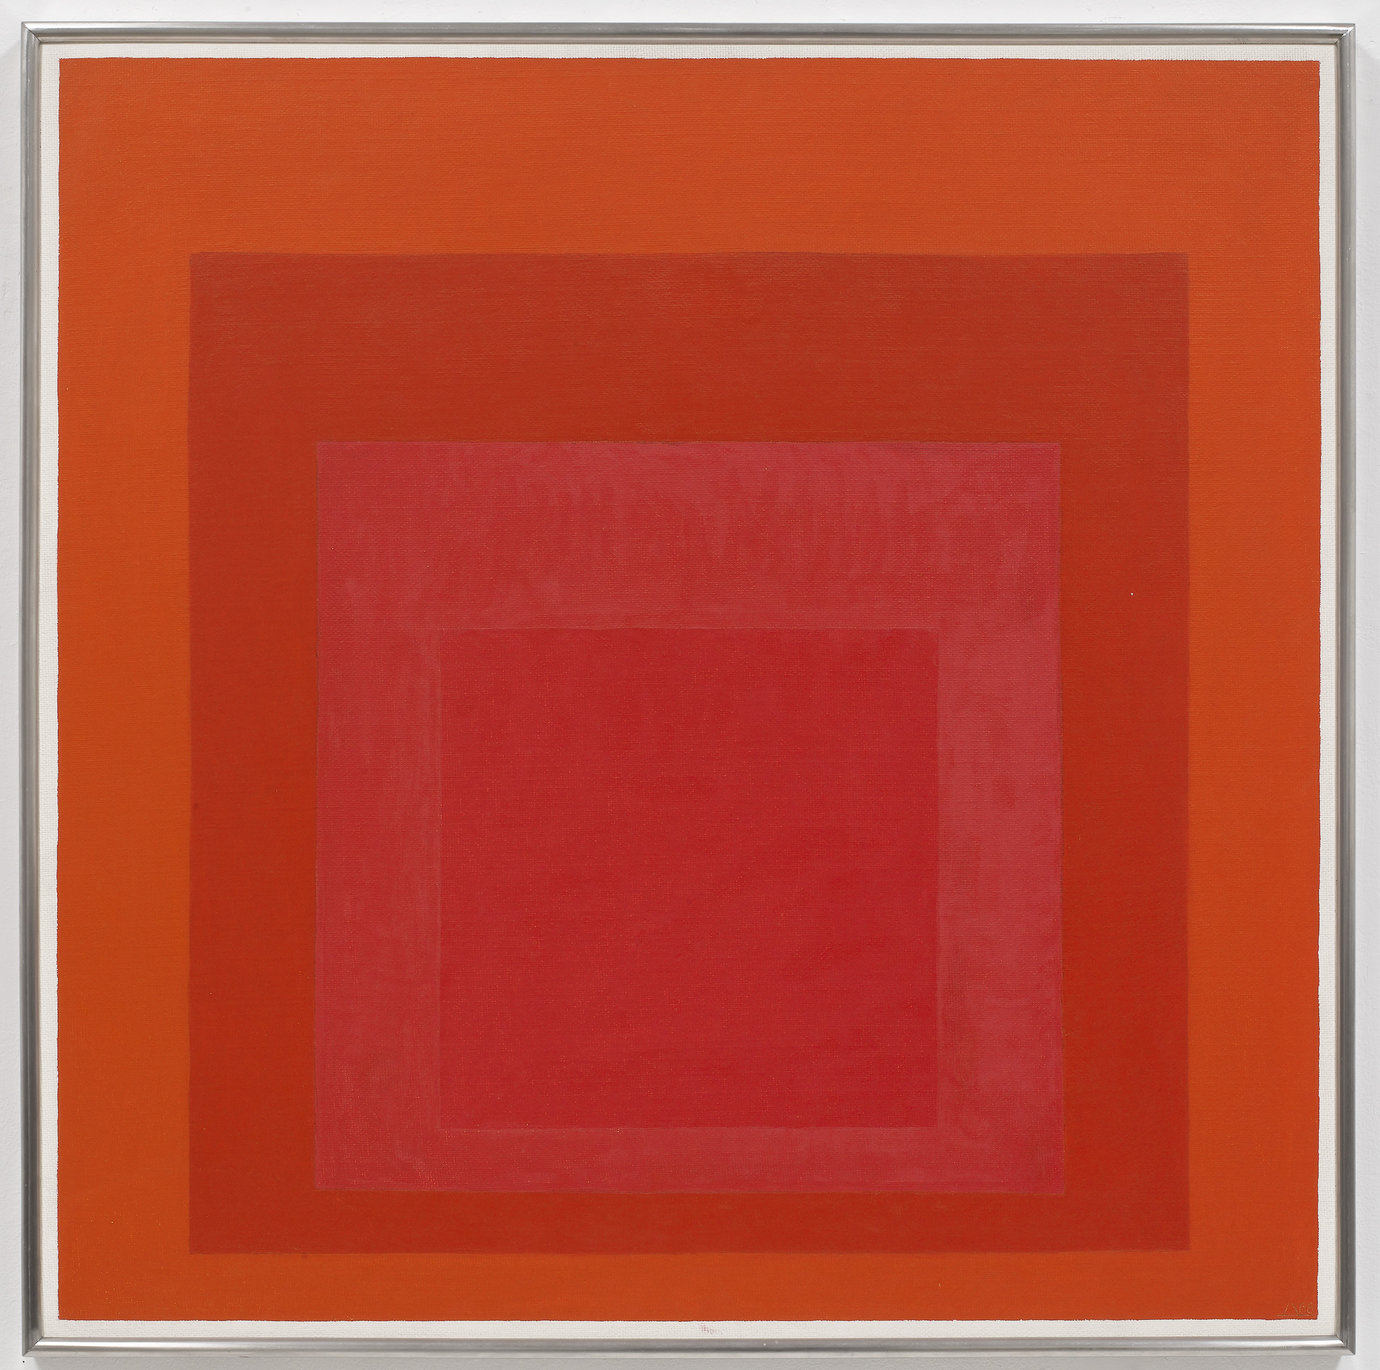 ", 1968. 32"" x 32"" (81.3 cm x 81.3 cm)."